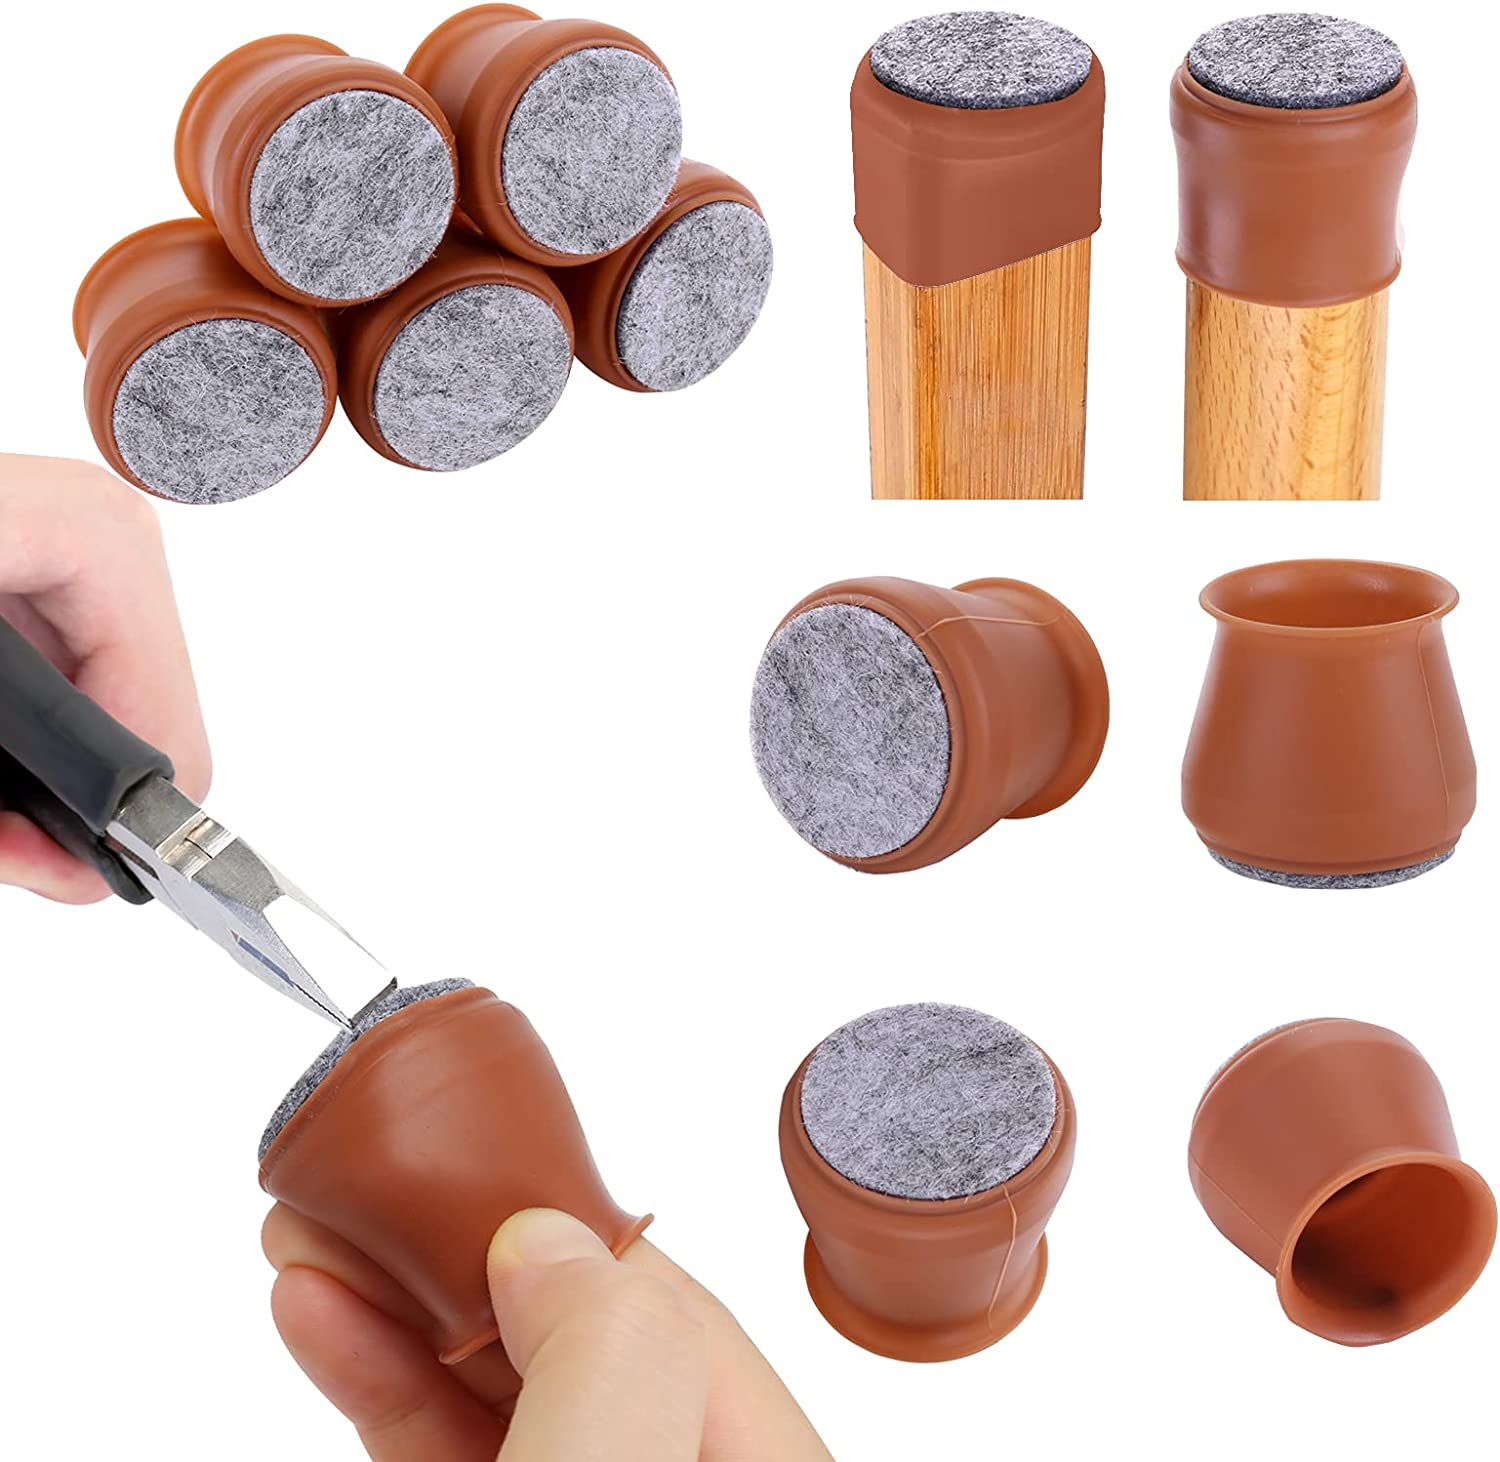 24 Pcs Silicone Chair Legs Caps - Furniture Foot Protectors - Free Moving Table Feet Covers - Stool Leg Floor Protectors Prevent Scratches and Noise (Medium, Coffee)